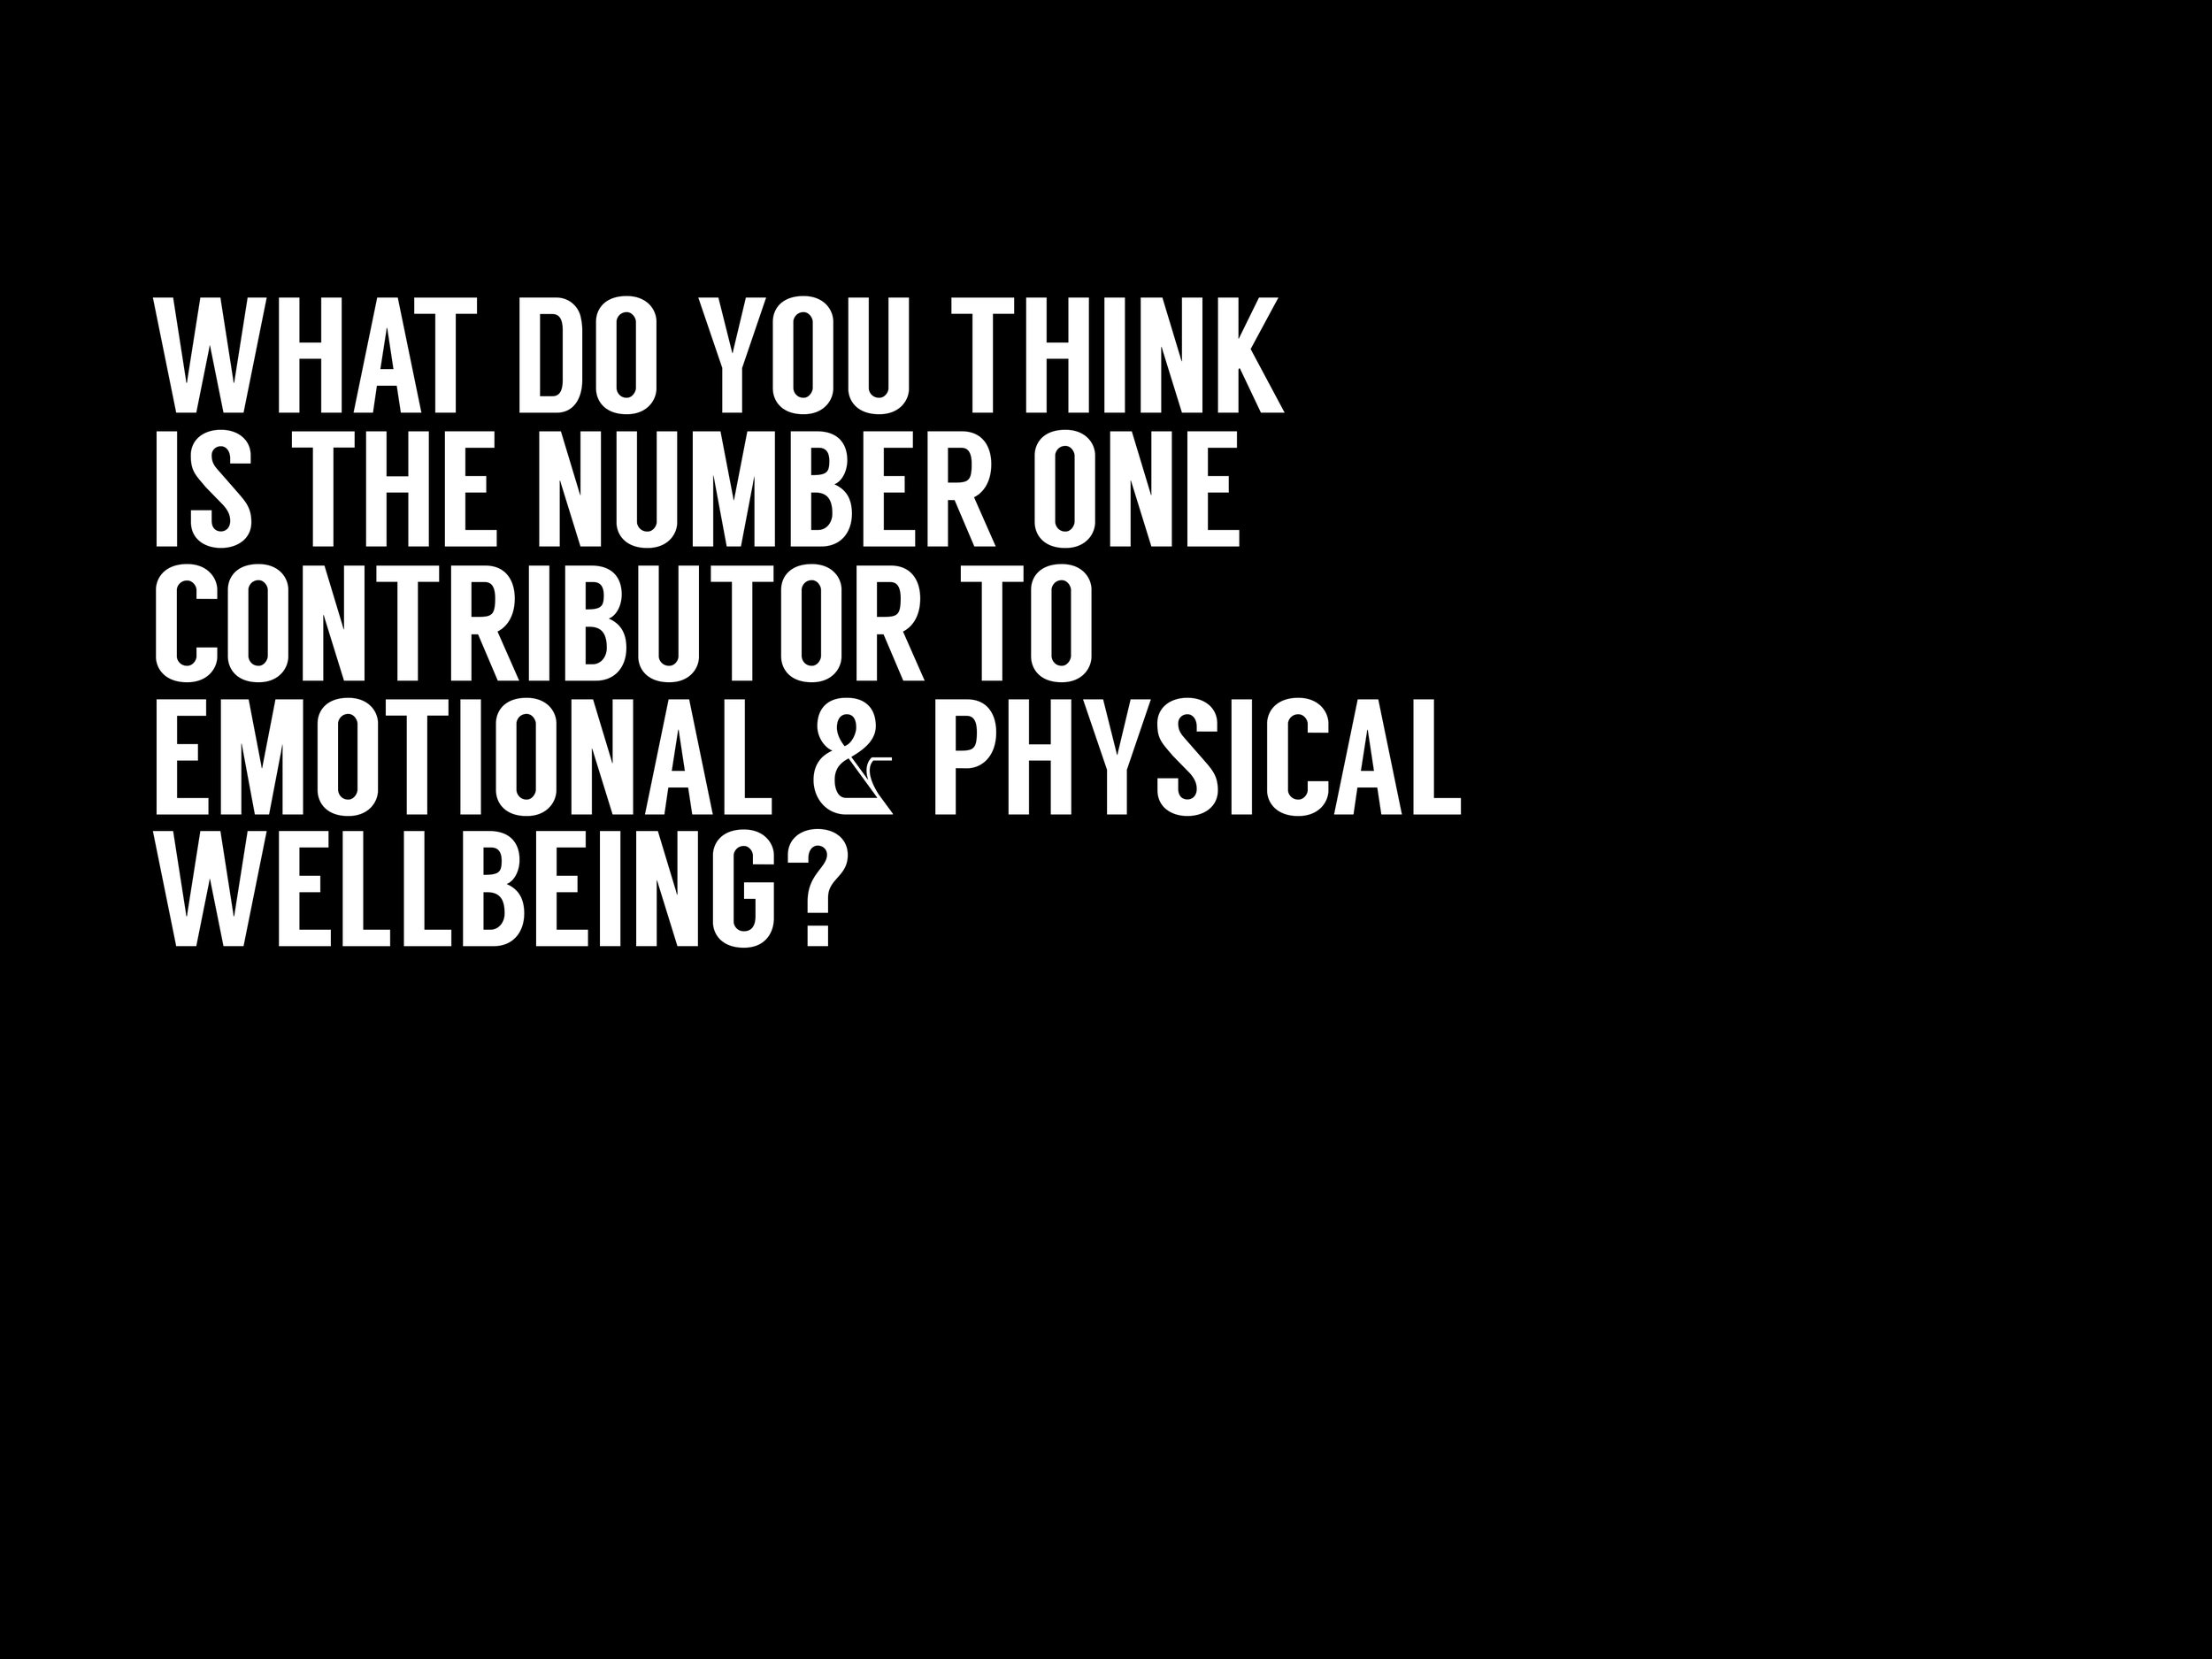 commercial relationship personal training melbourne 3.jpg